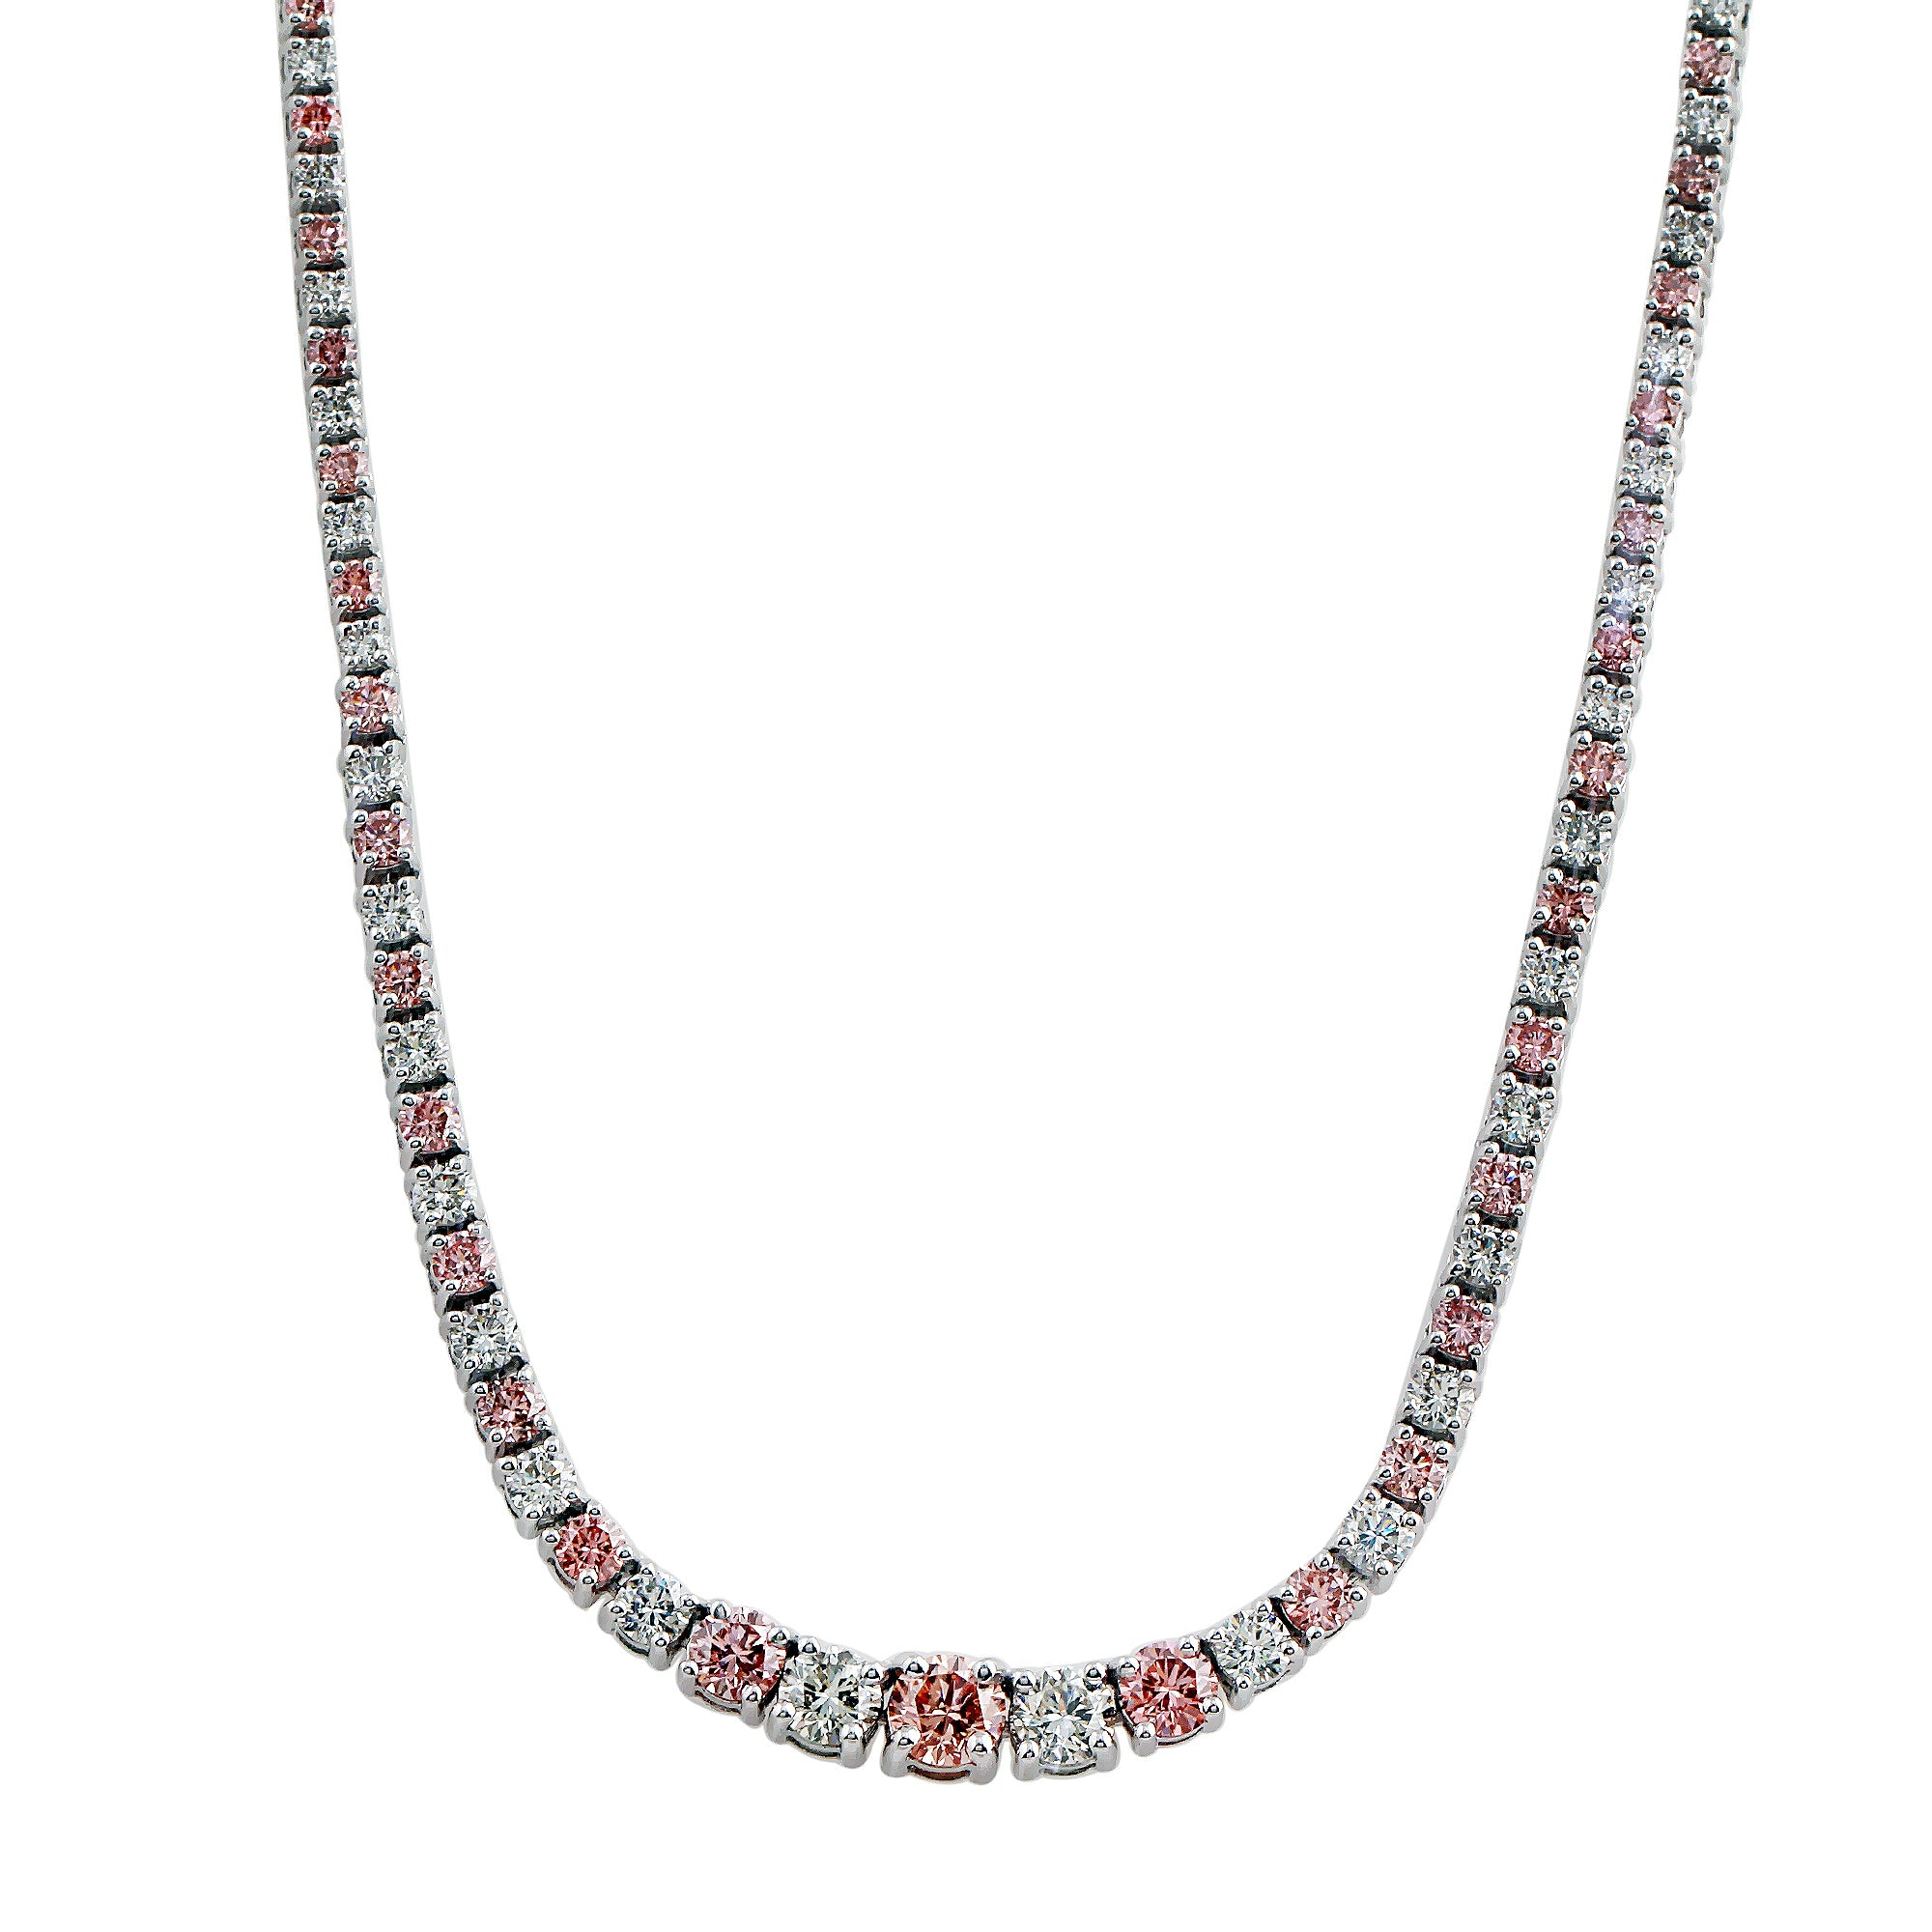 14K White Gold 10.00CTTW White and Pink Lab-Grown Diamond Necklace